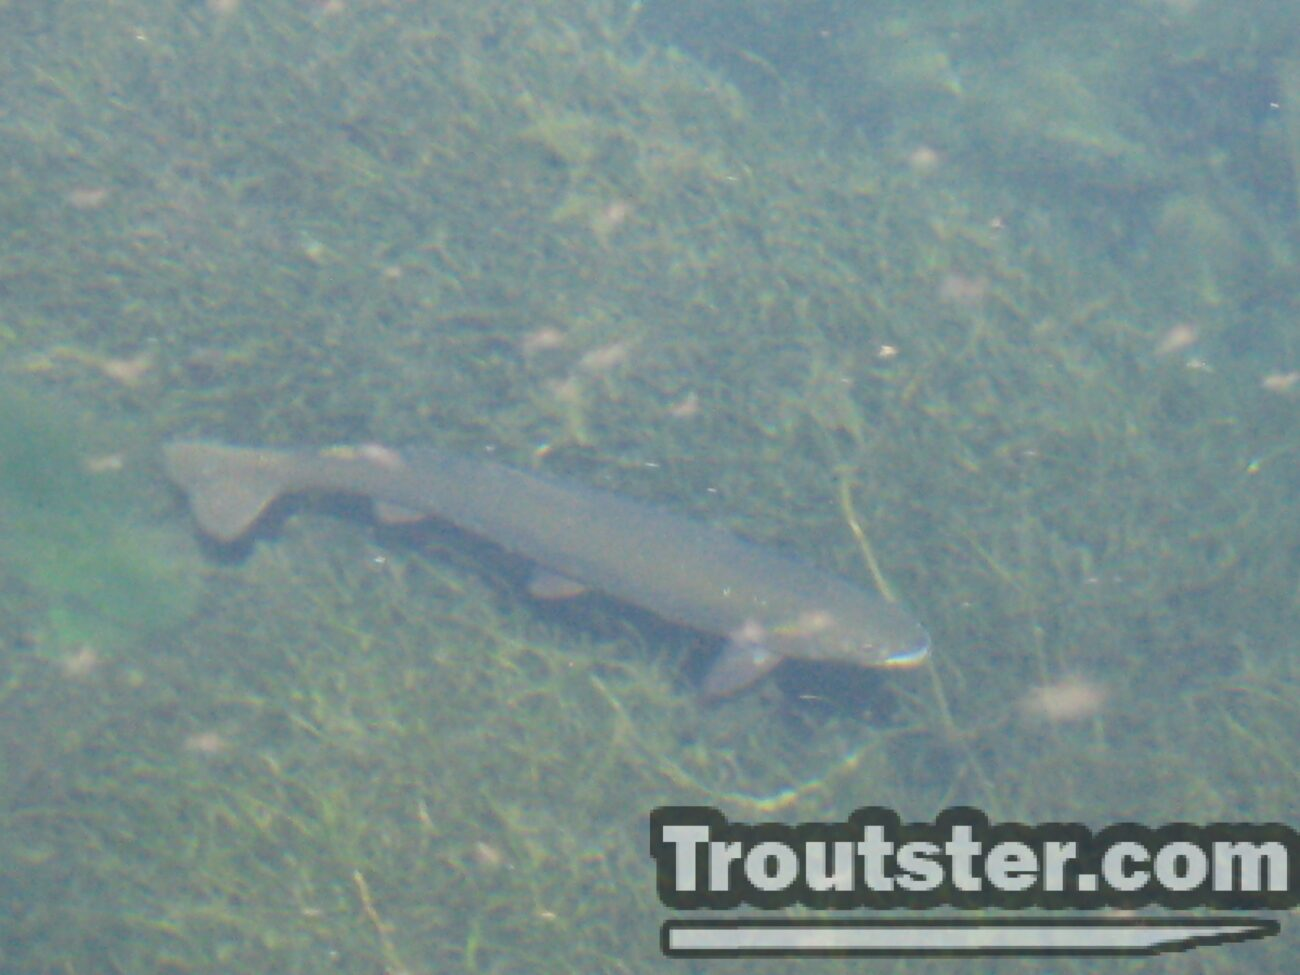 brown trout spawning, brown trout migration, brown trout breeding